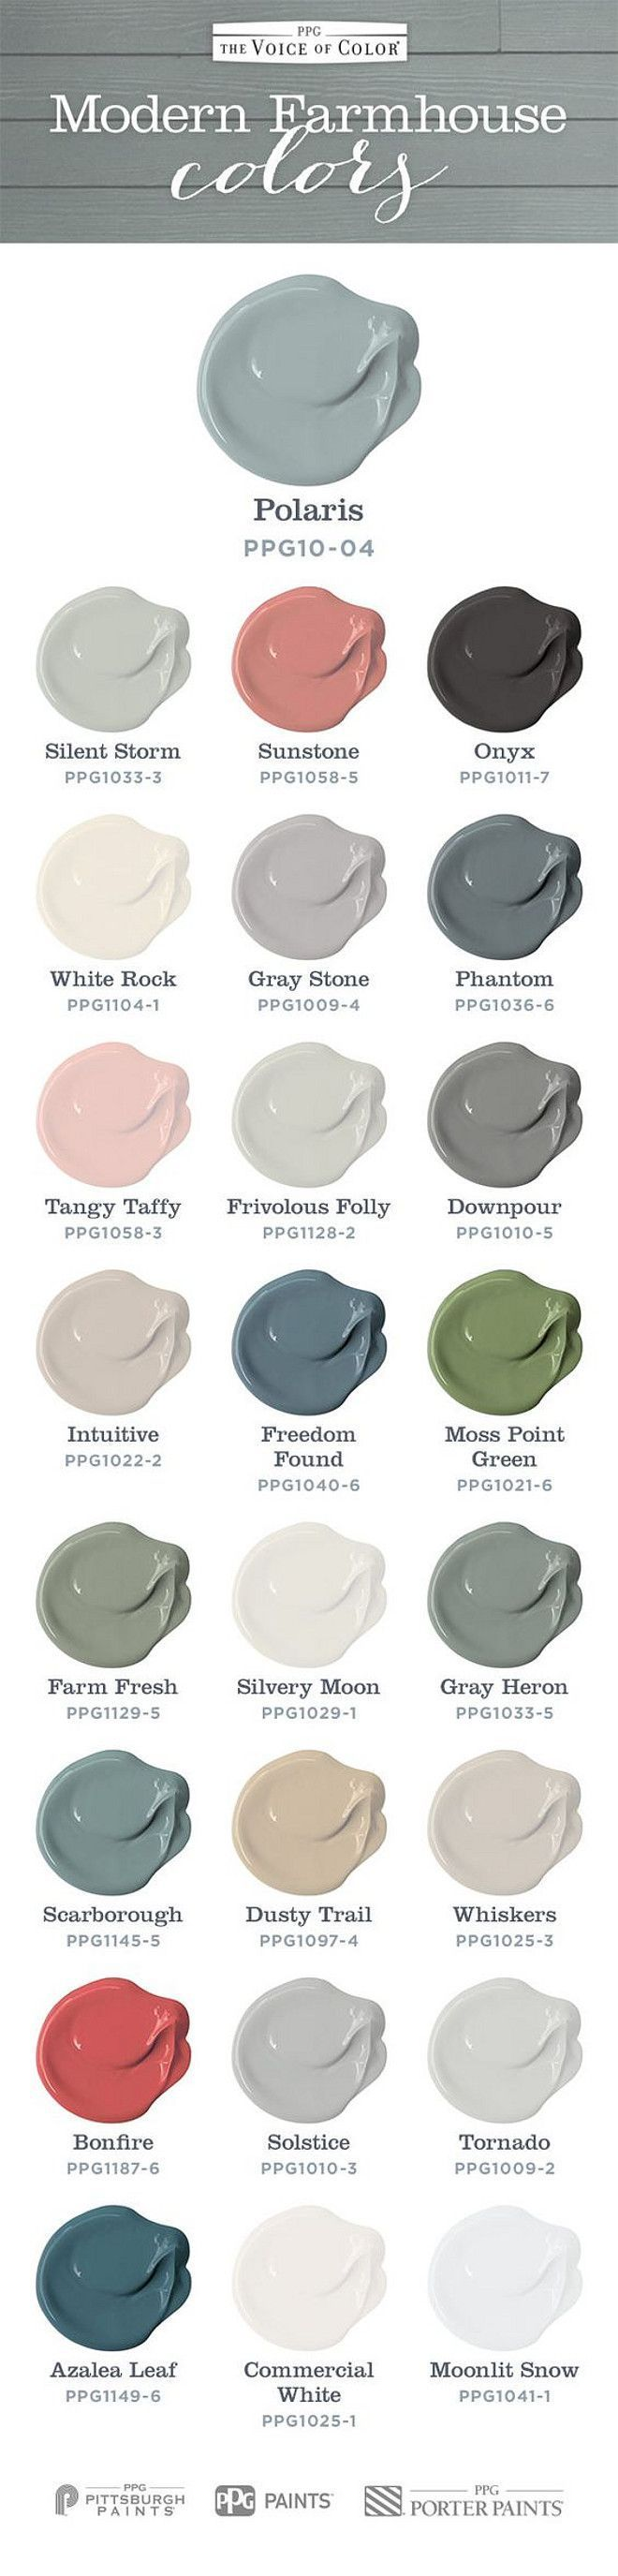 17 Best images about color on Pinterest.